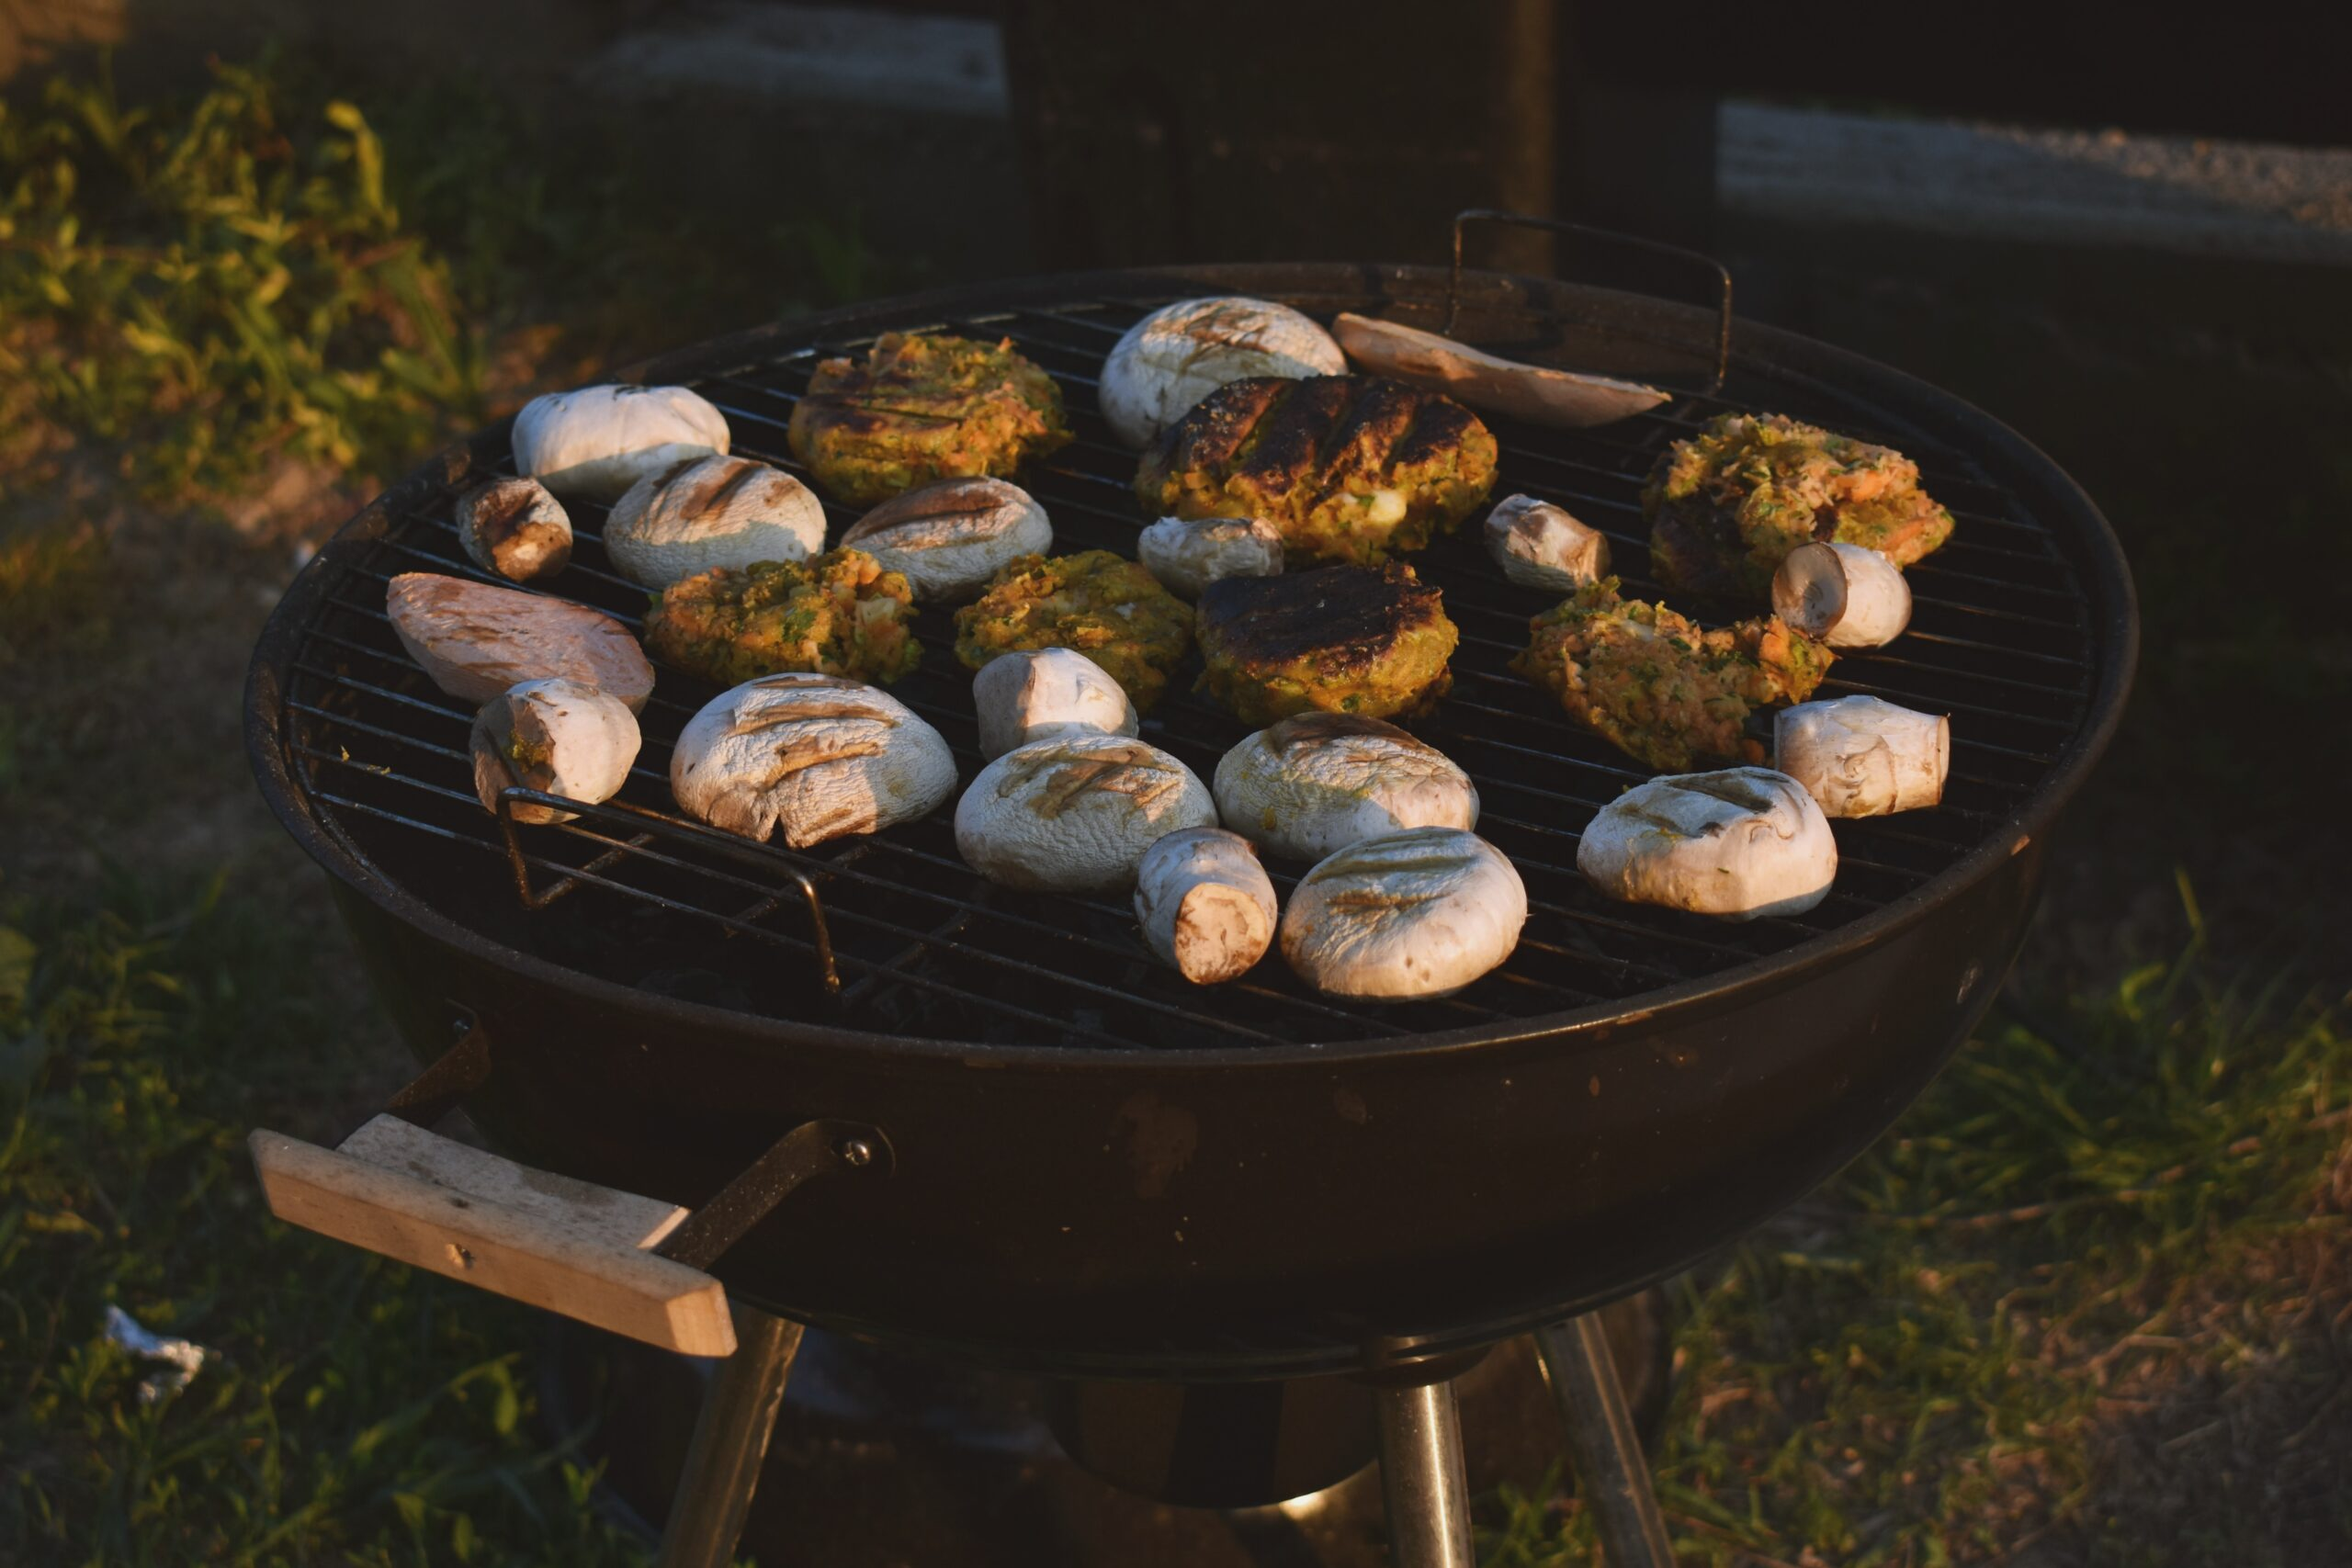 Assorted food on an outdoor grill